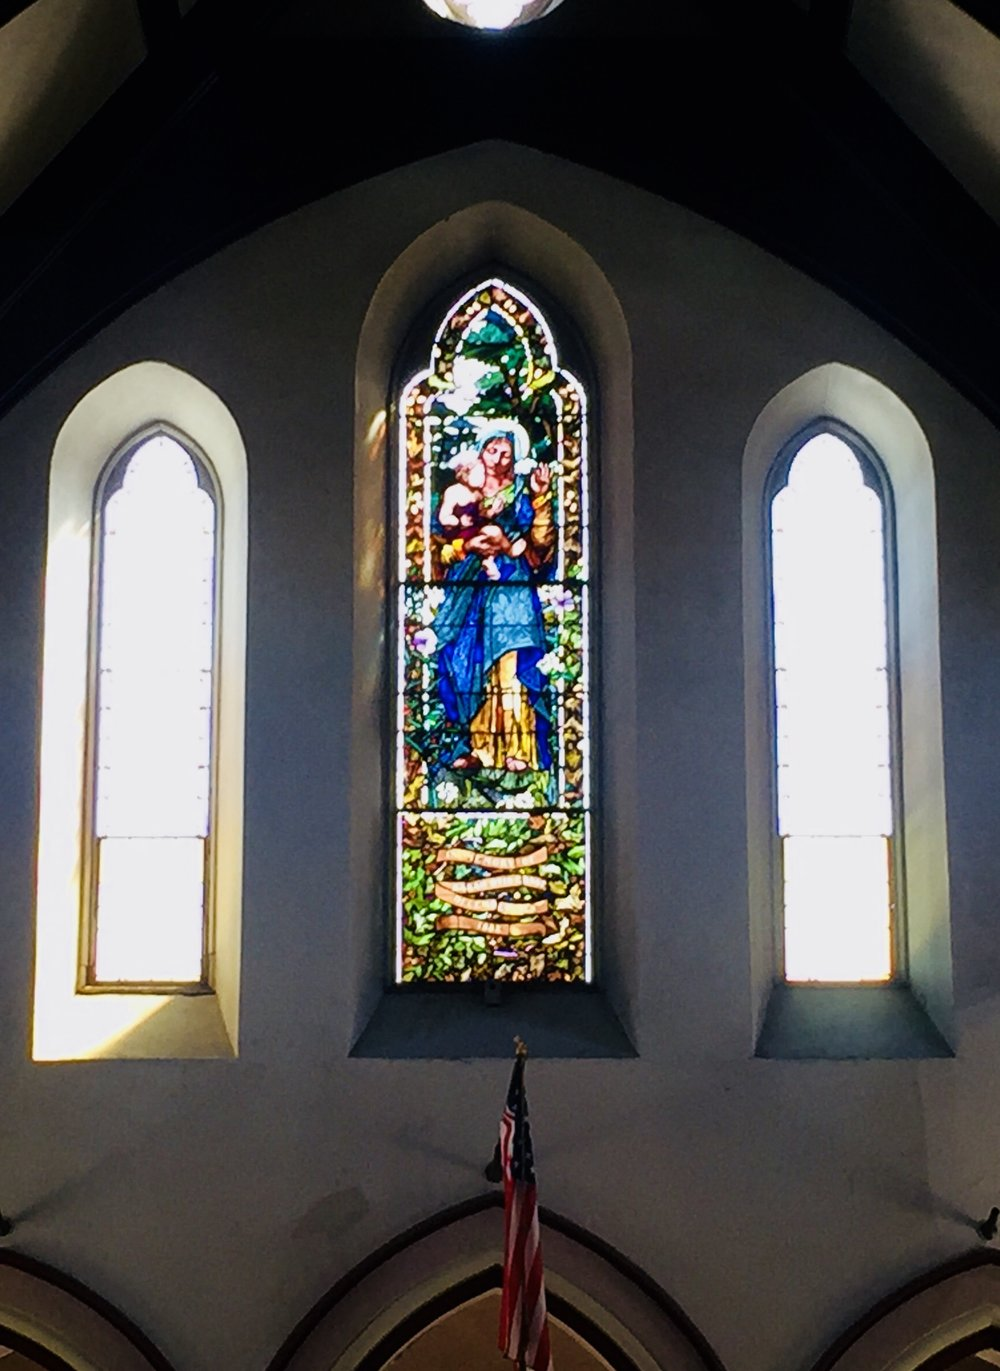 The church's Black Madonna window was restored as part of our capital campaign. A Rededication of this Sarah Otis Ernst Memorial Window was held in the Spring of 2017.